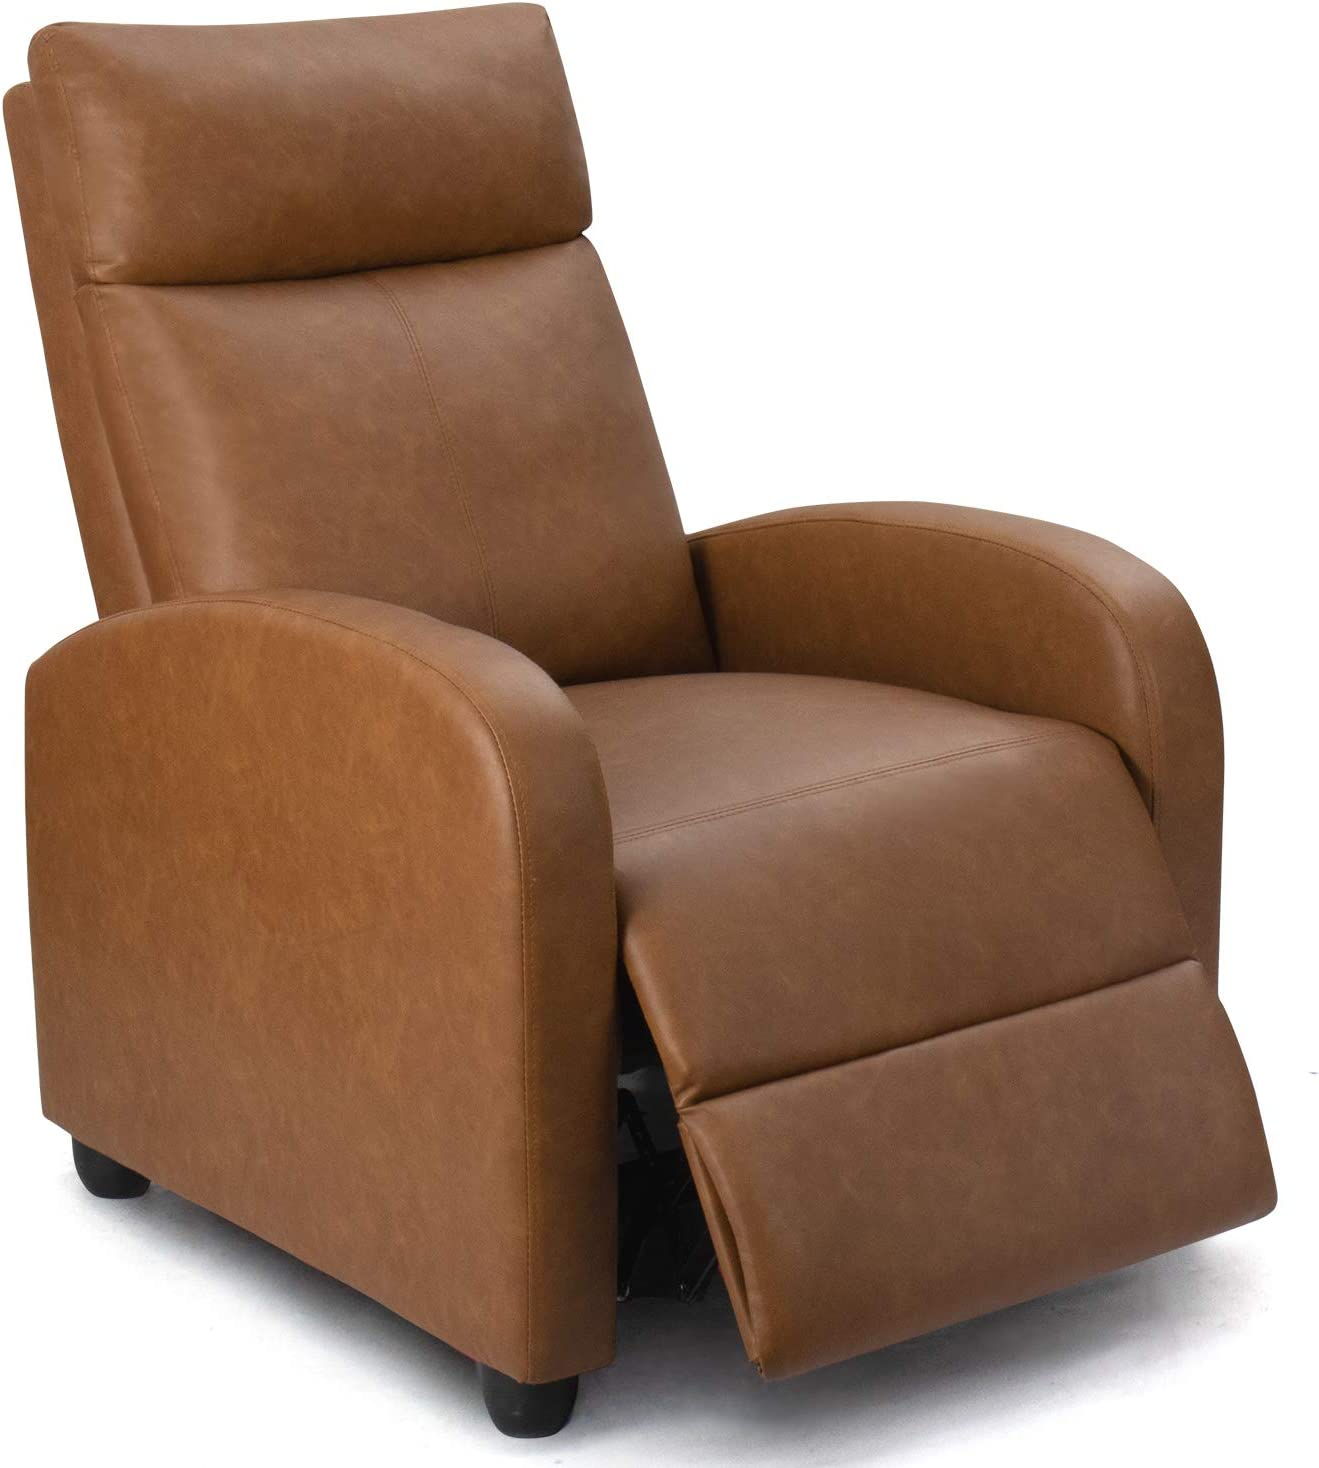 Homall Recliner Chair Padded Seat Pu Leather for Living Room Single Sofa Recliner Modern Recliner Seat Club Chair Home Theater Seating (Khaki)